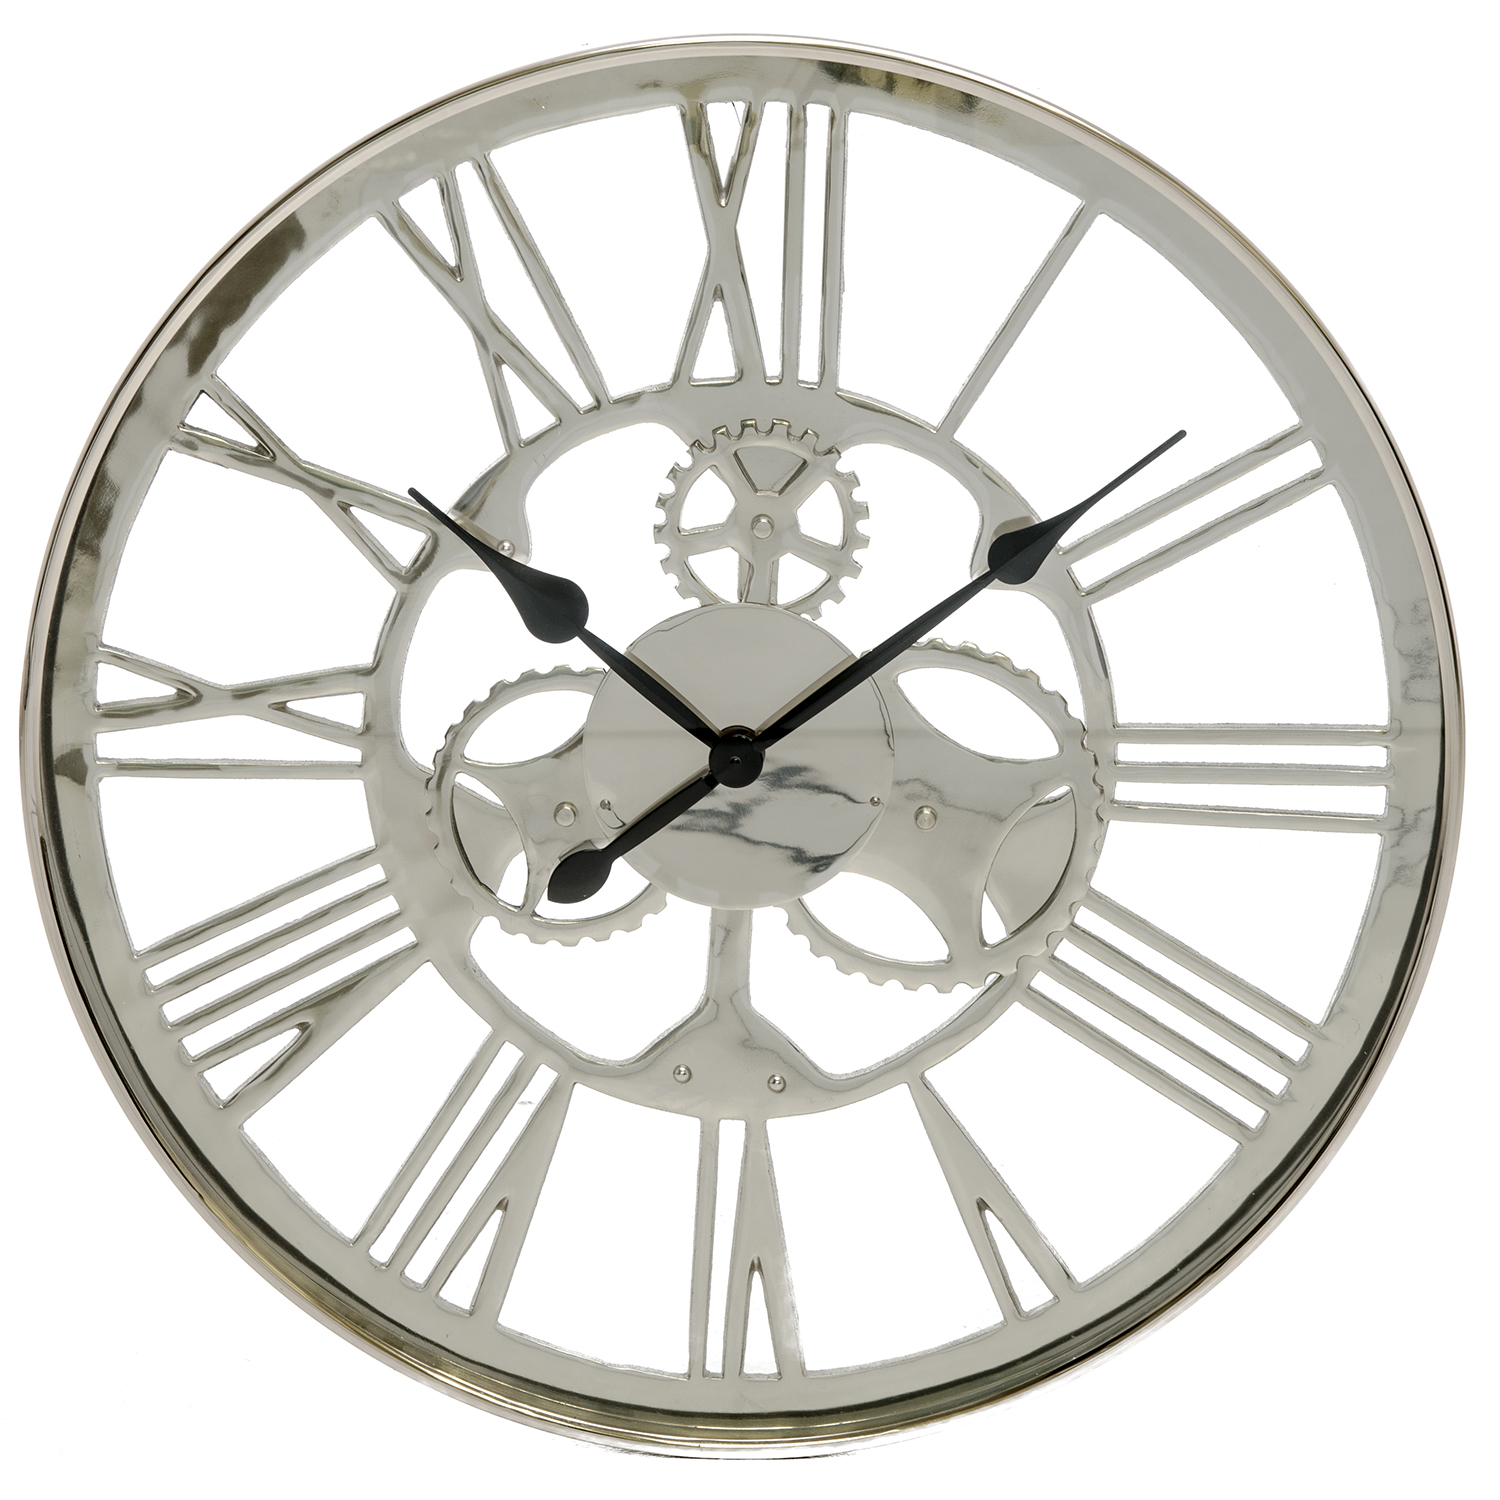 Image of Casa Westminster Artistic Gears Wall Clock, Silver